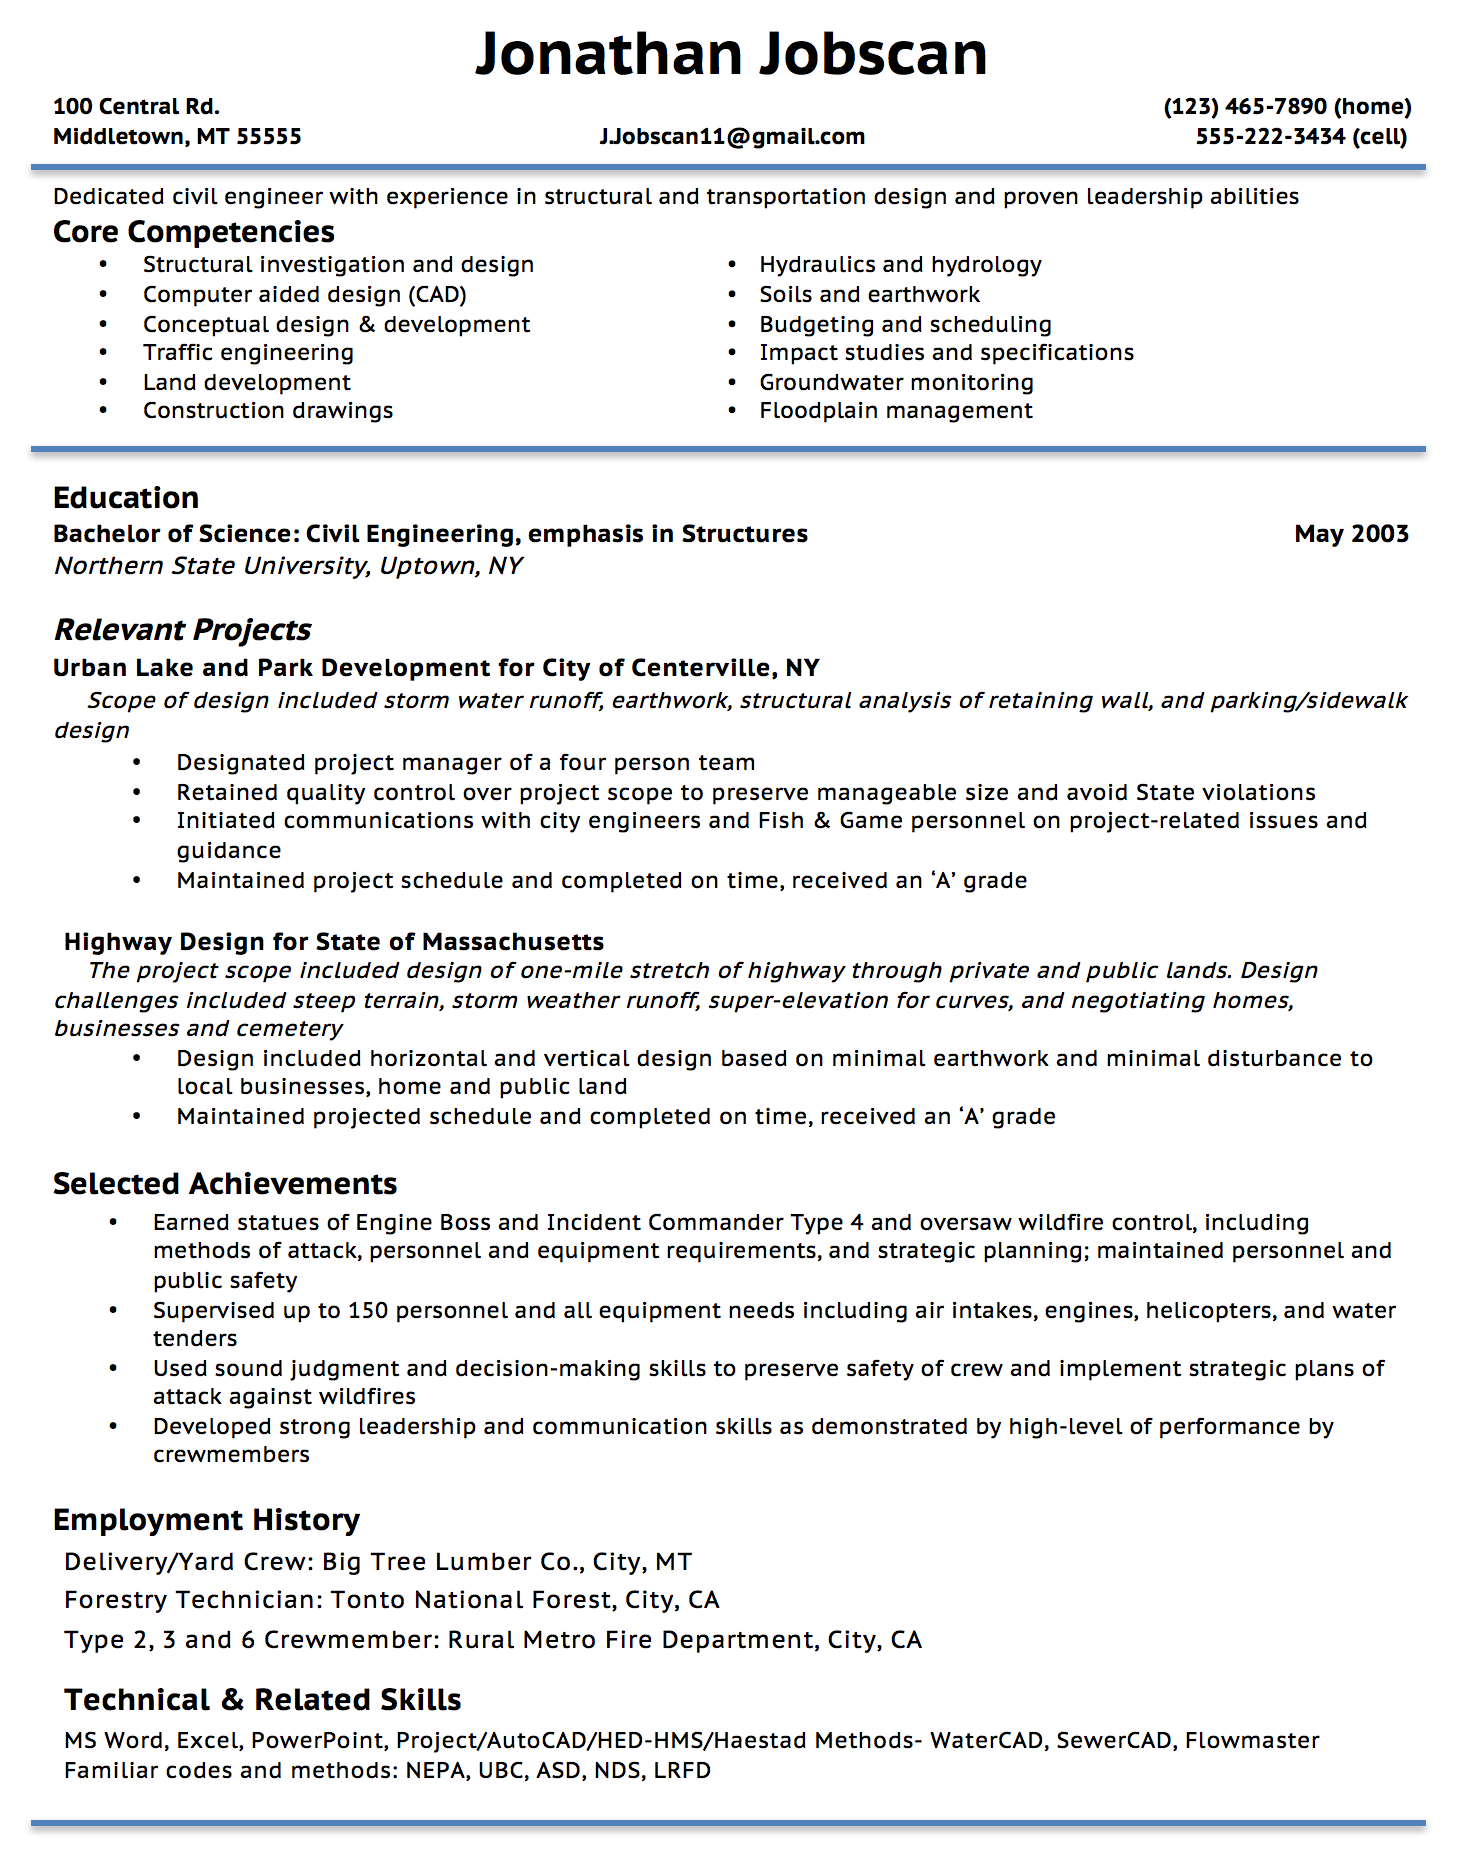 Opposenewapstandardsus  Winning Resume Writing Guide  Jobscan With Hot Example Of A Functional Resume Format With Delectable Html Resume Template Also Resume Vs Curriculum Vitae In Addition Simple Job Resume Template And Top Resume Examples As Well As Verbs To Use In Resume Additionally Submit Resume From Jobscanco With Opposenewapstandardsus  Hot Resume Writing Guide  Jobscan With Delectable Example Of A Functional Resume Format And Winning Html Resume Template Also Resume Vs Curriculum Vitae In Addition Simple Job Resume Template From Jobscanco